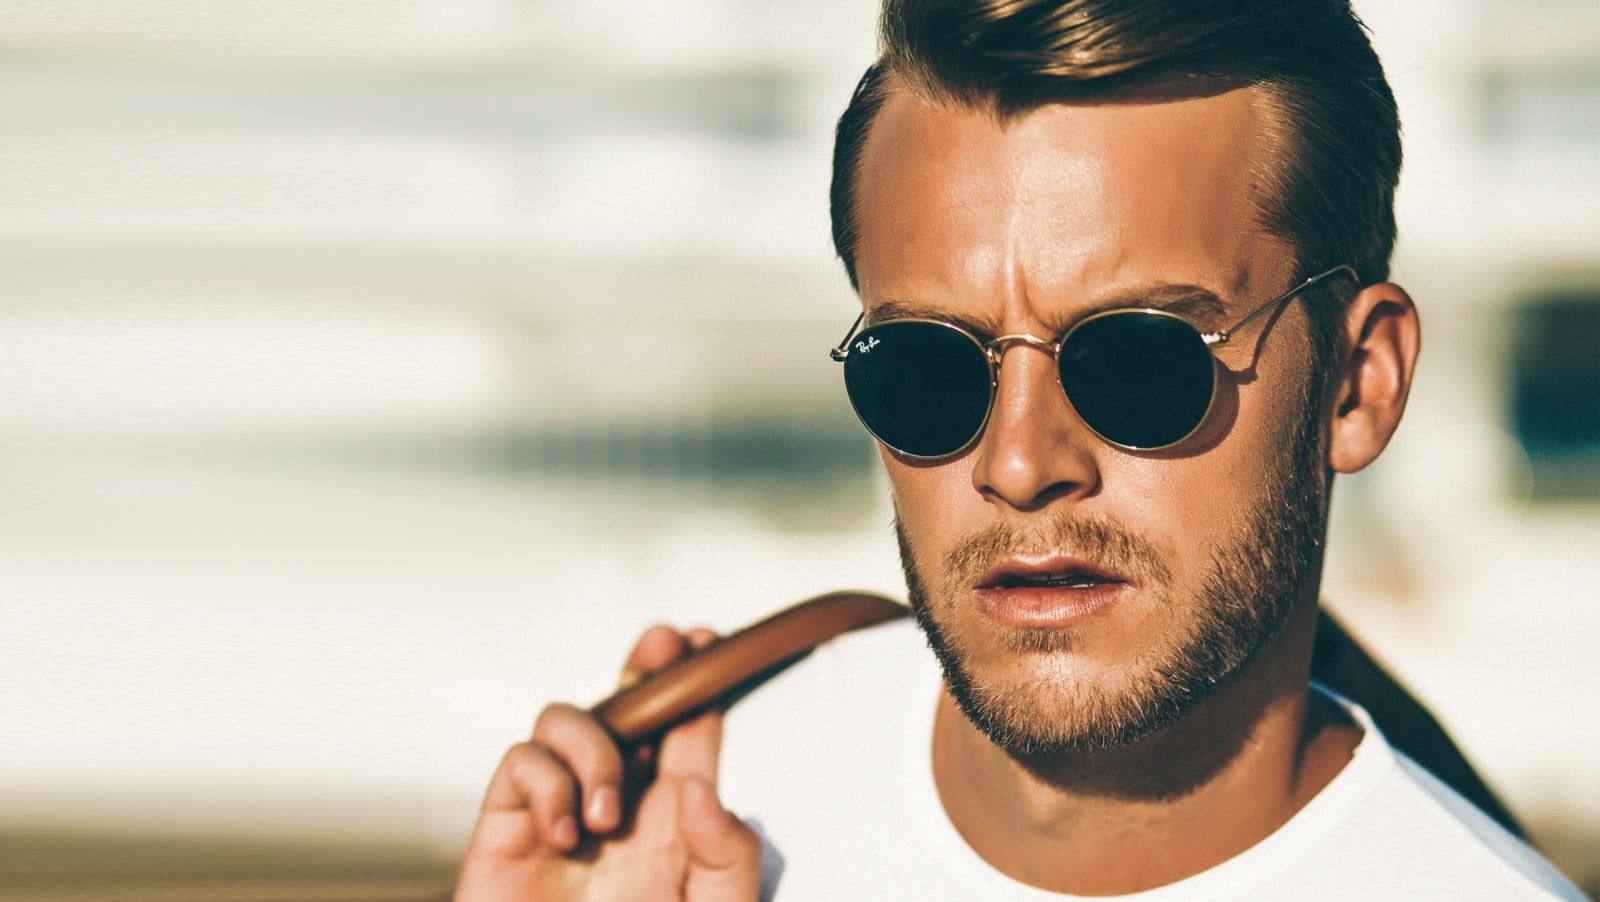 The best new sunglasses for 2017